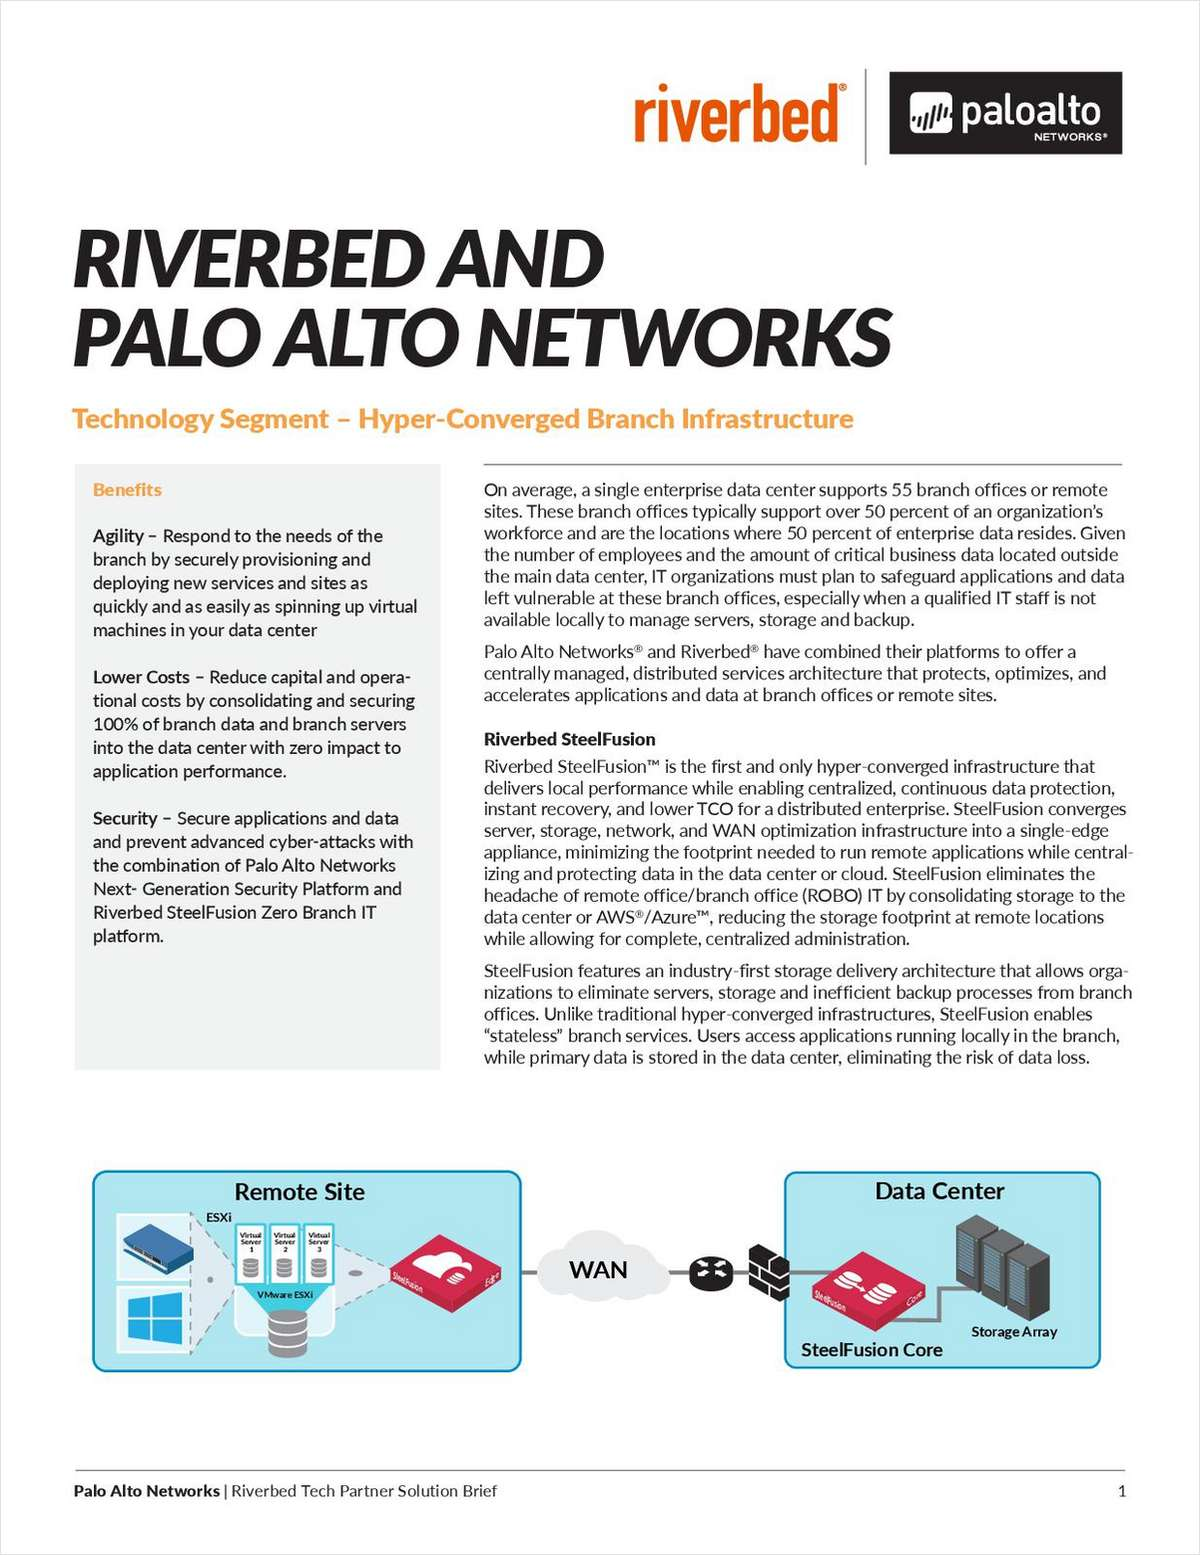 Riverbed and Palo Alto Networks